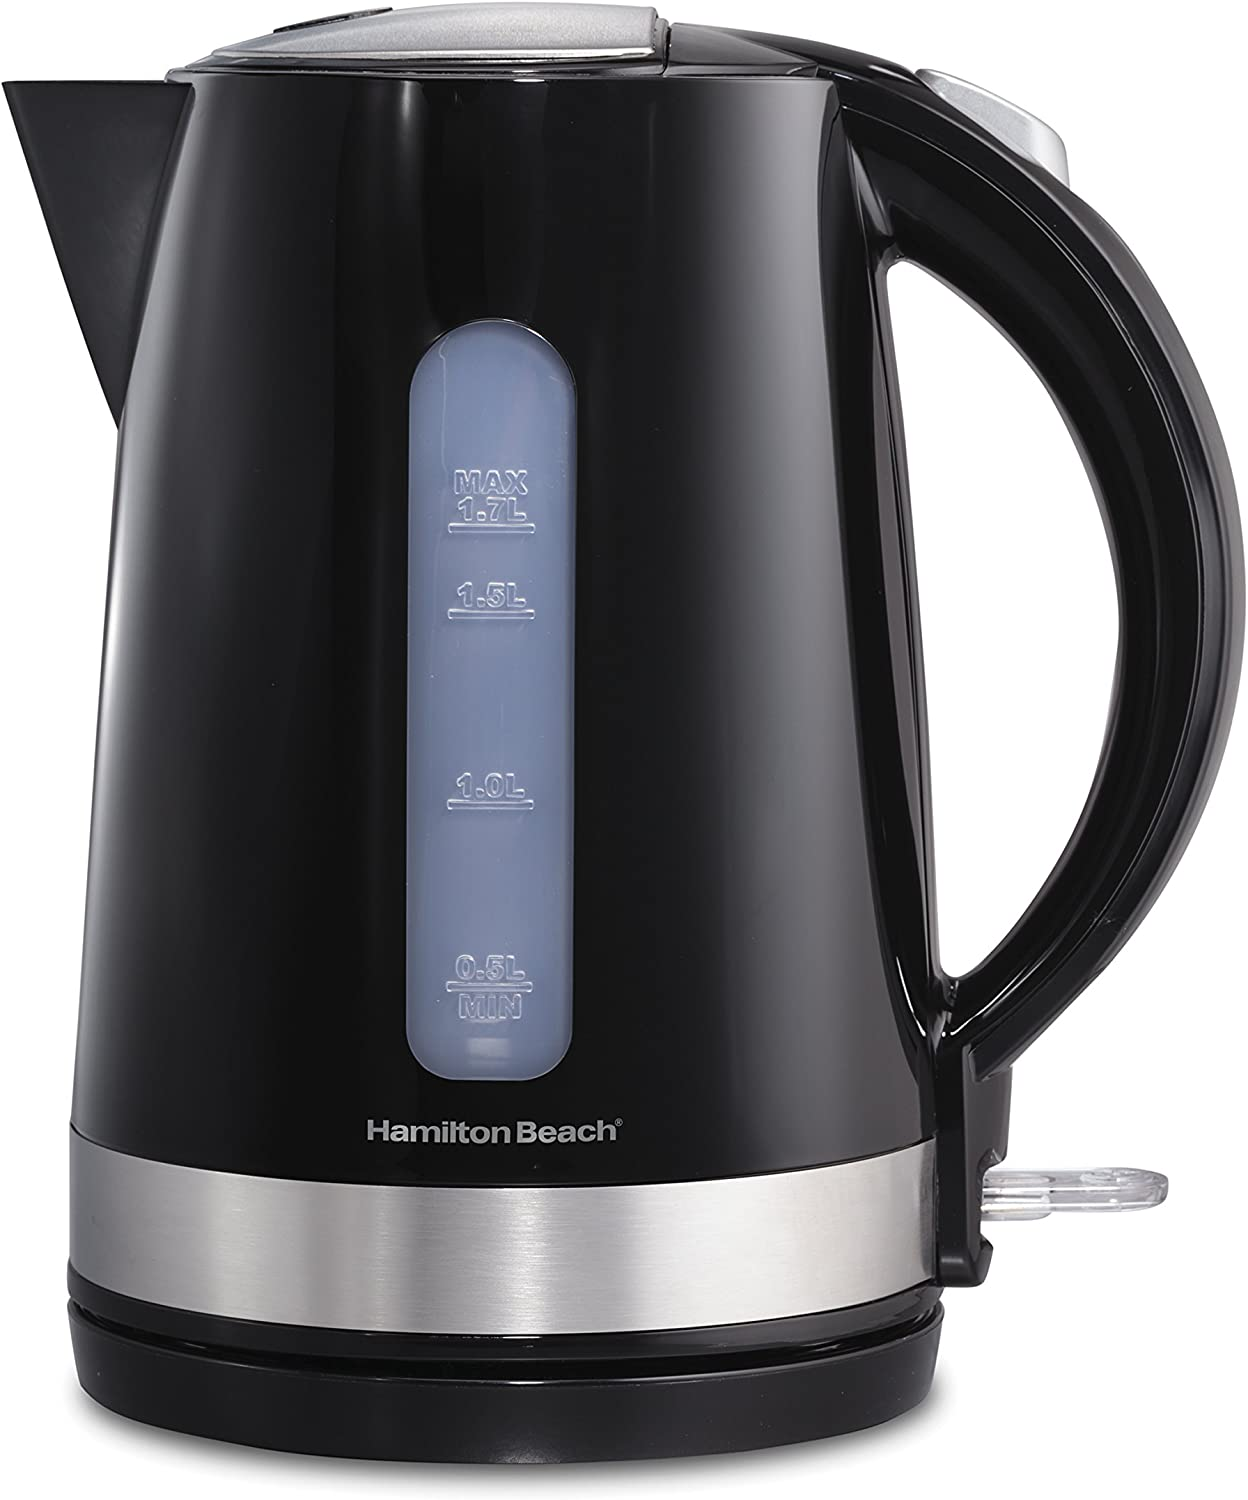 Hamilton Beach 1.7 Liter Electric Kettle for Tea and Water, Cordless, Auto-Shutoff and Boil-Dry Protection, Black 41010